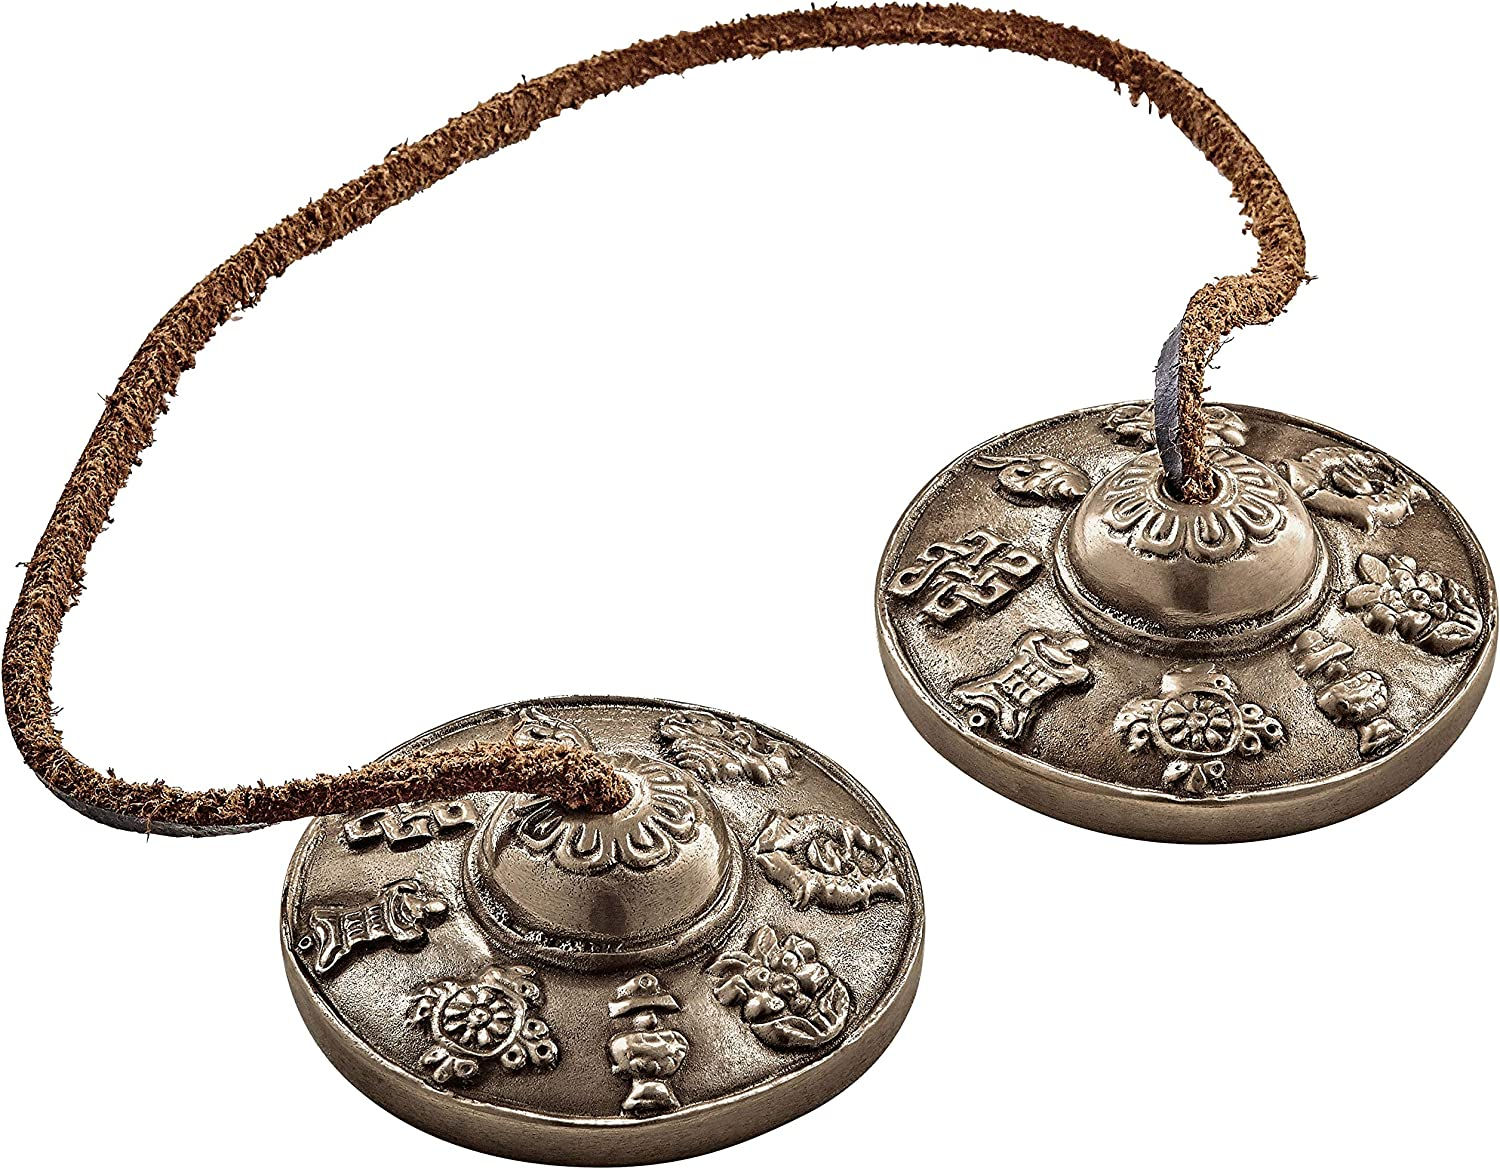 2-YEAR WARRANTY Includes Cotton Storage Bag Tingsha Finger Cymbals for Sound Healing Therapy Ashtamangala Yoga and Meditation /— MADE IN INDIA /— Special Cast Alloy with 8 Luck Symbol Finish